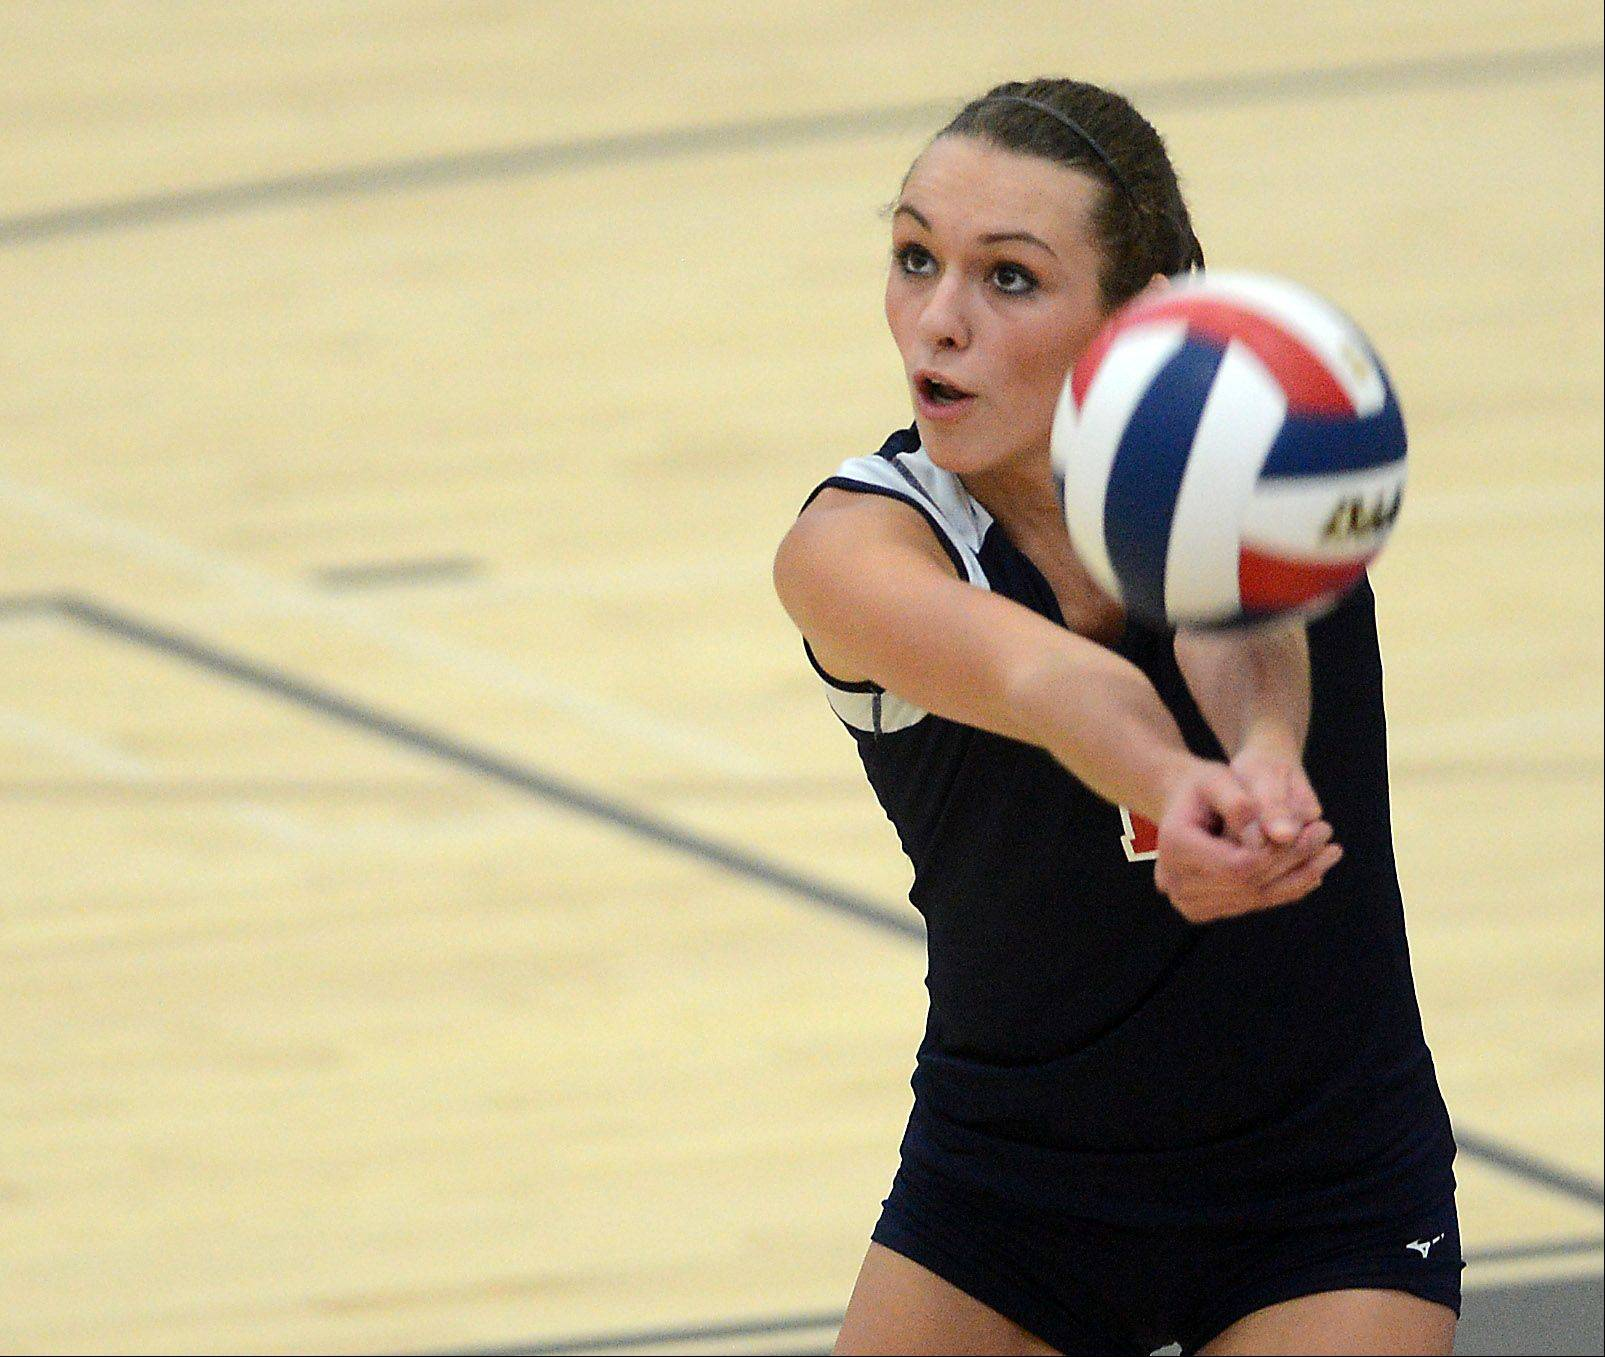 South Elgin's Katie Innis returns serve against St. Charles North during Thursday's game in St. Charles.